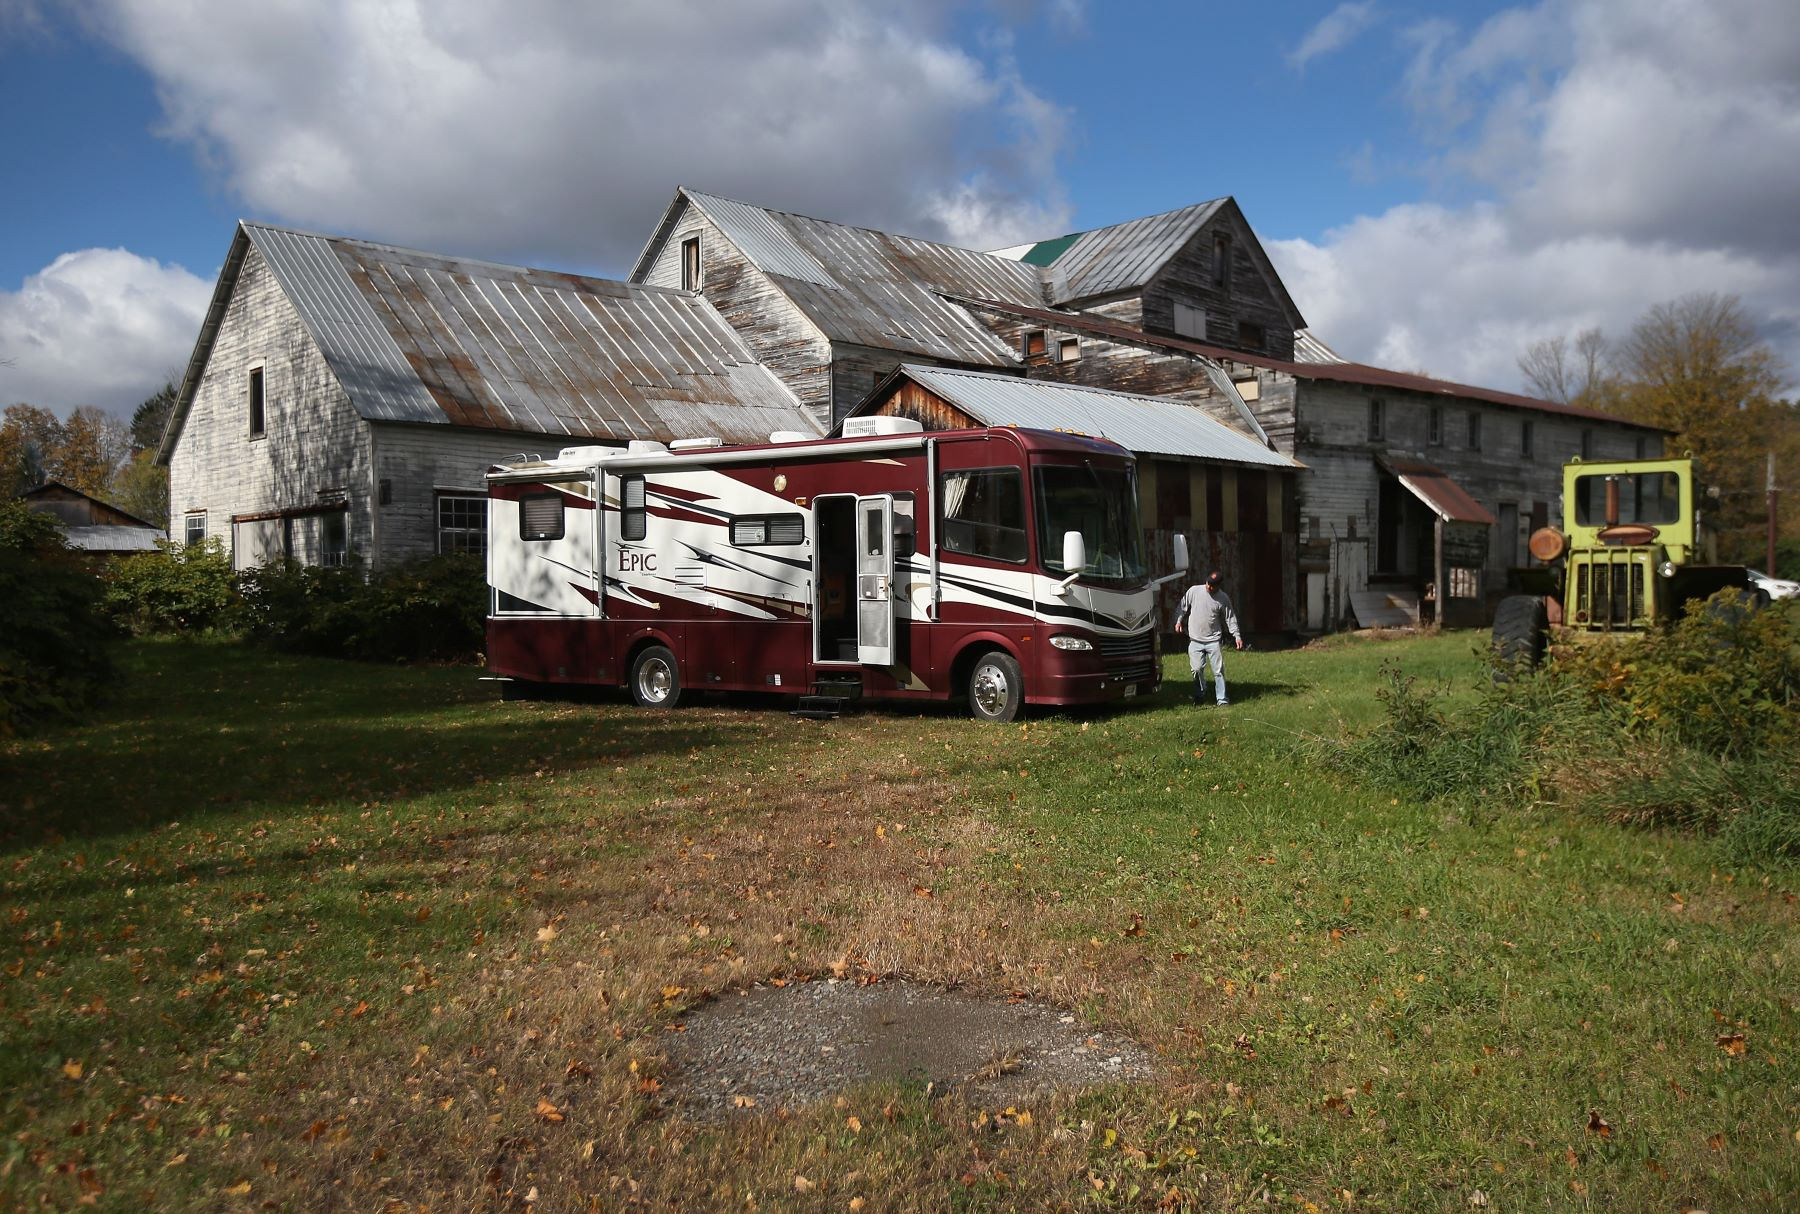 A recovery repo agent retrieving an RV parked on a farm